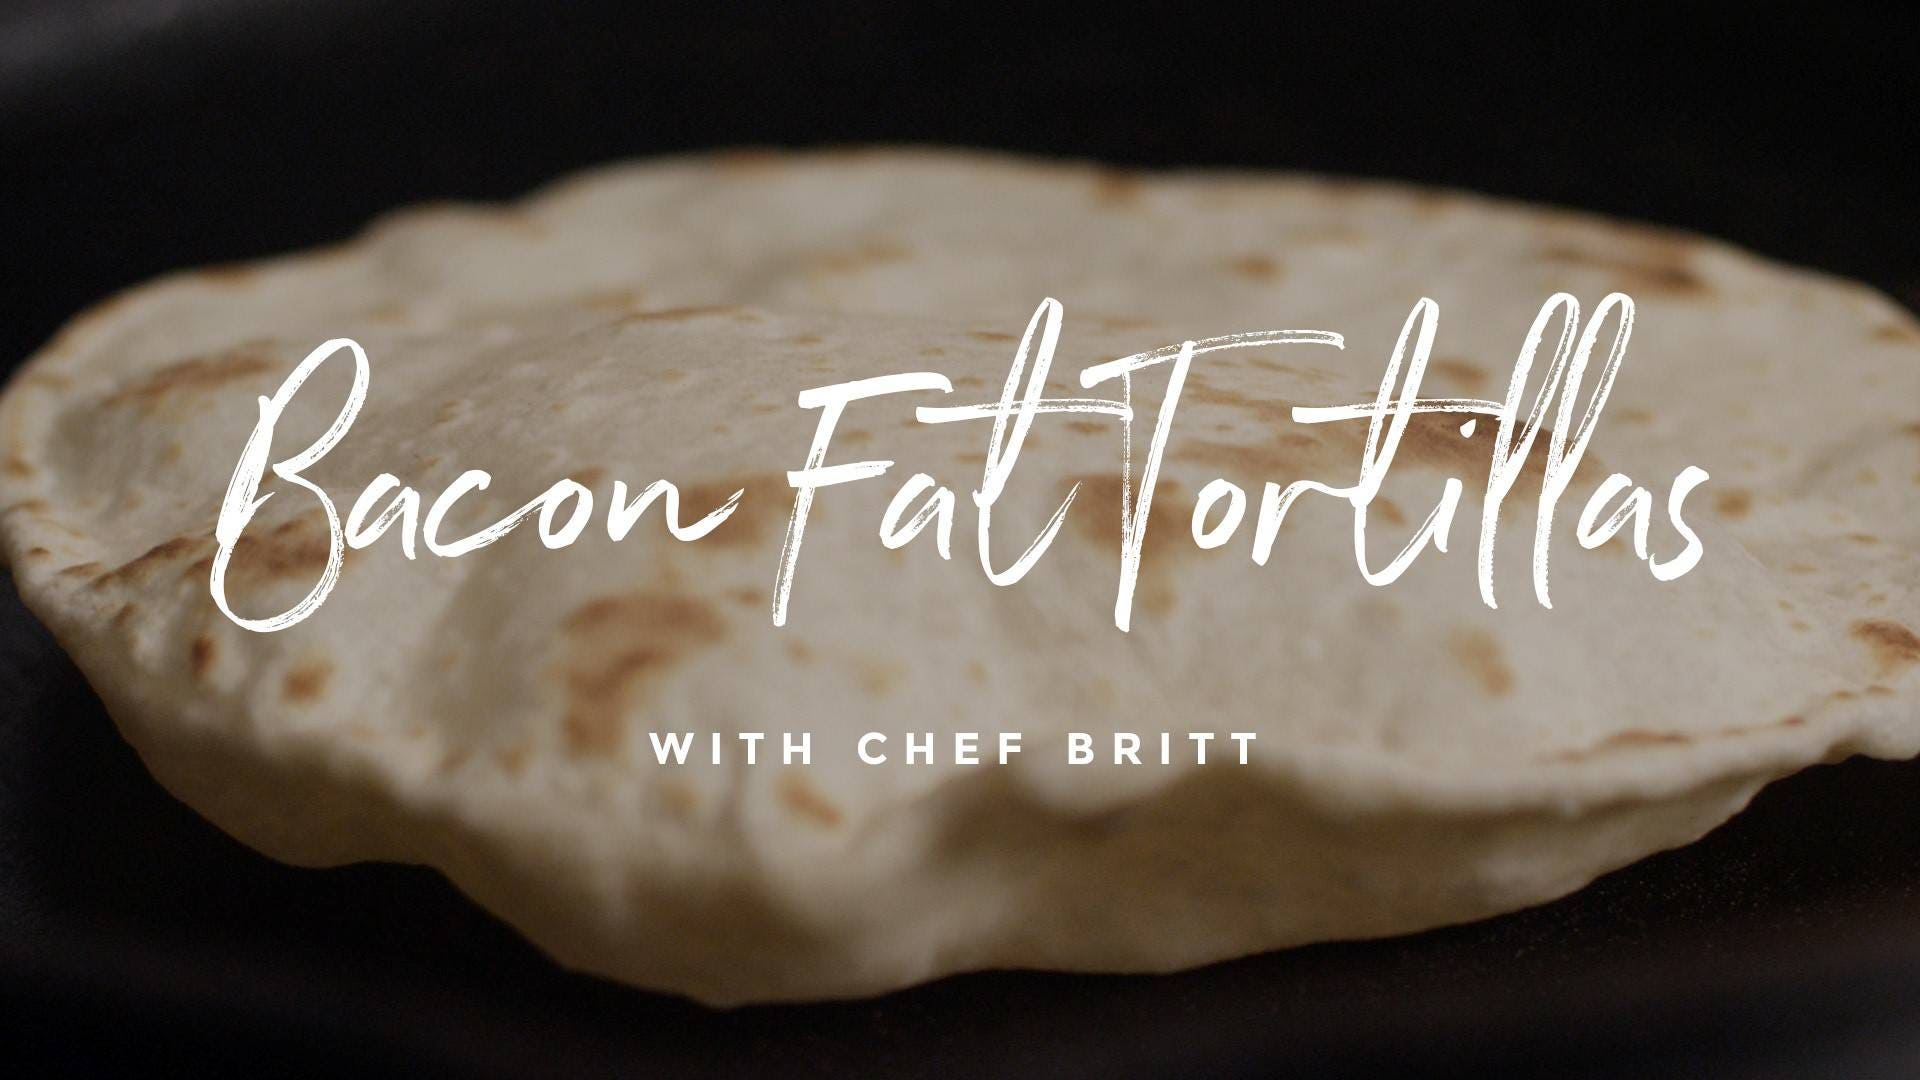 How to make Bacon Fat Flour Tortillas